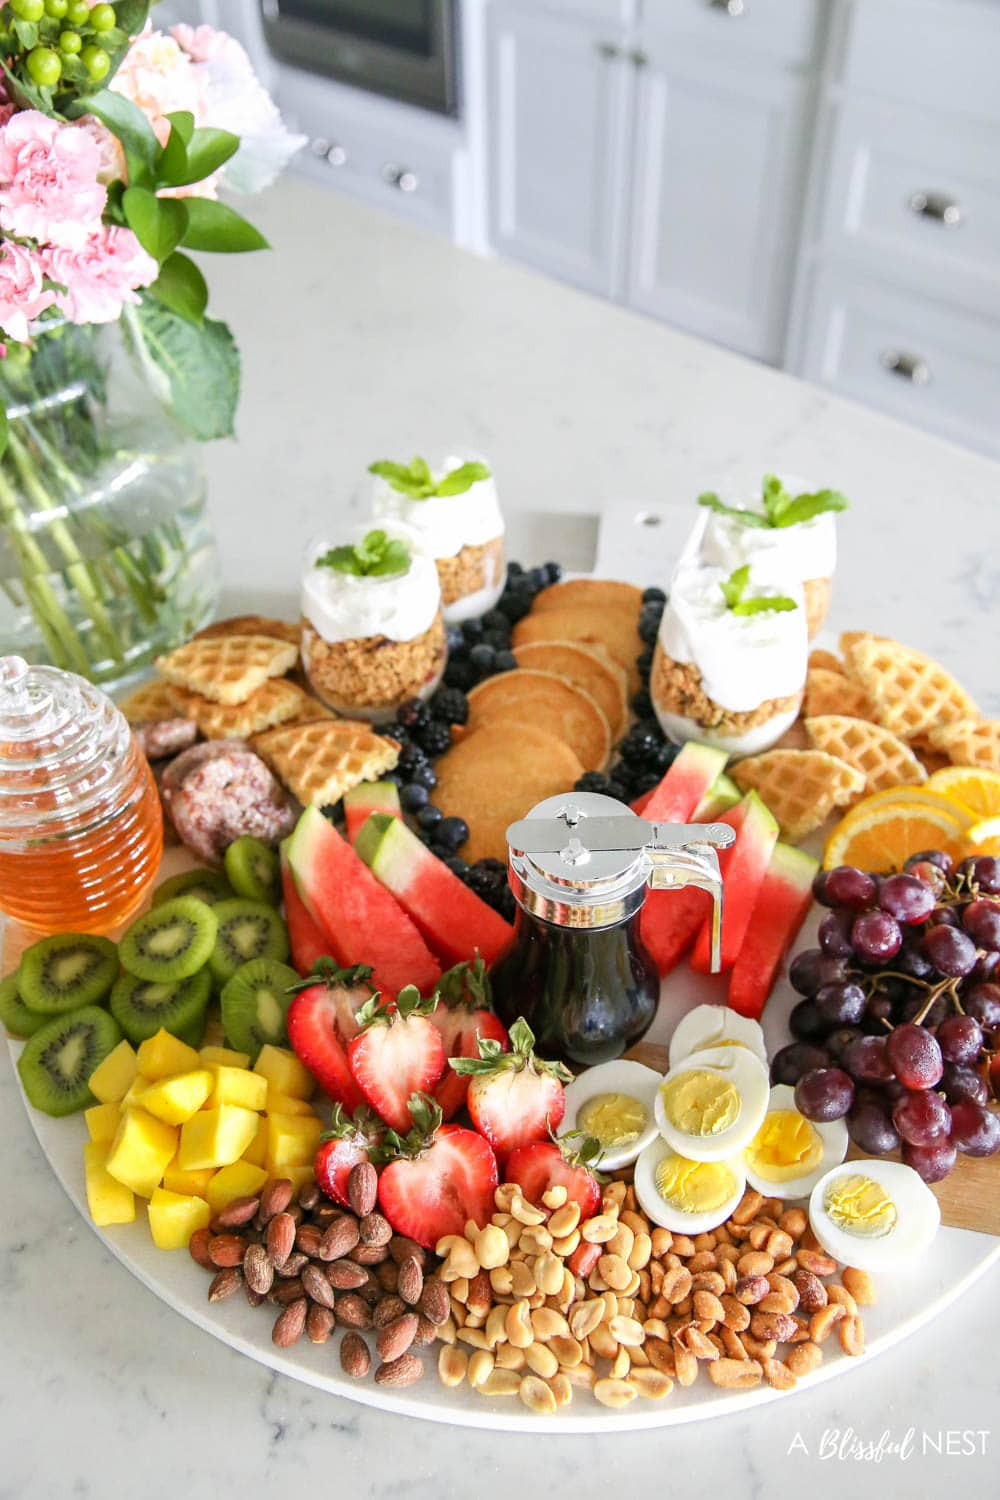 How to Build a Delicious Brunch Charcuterie Board